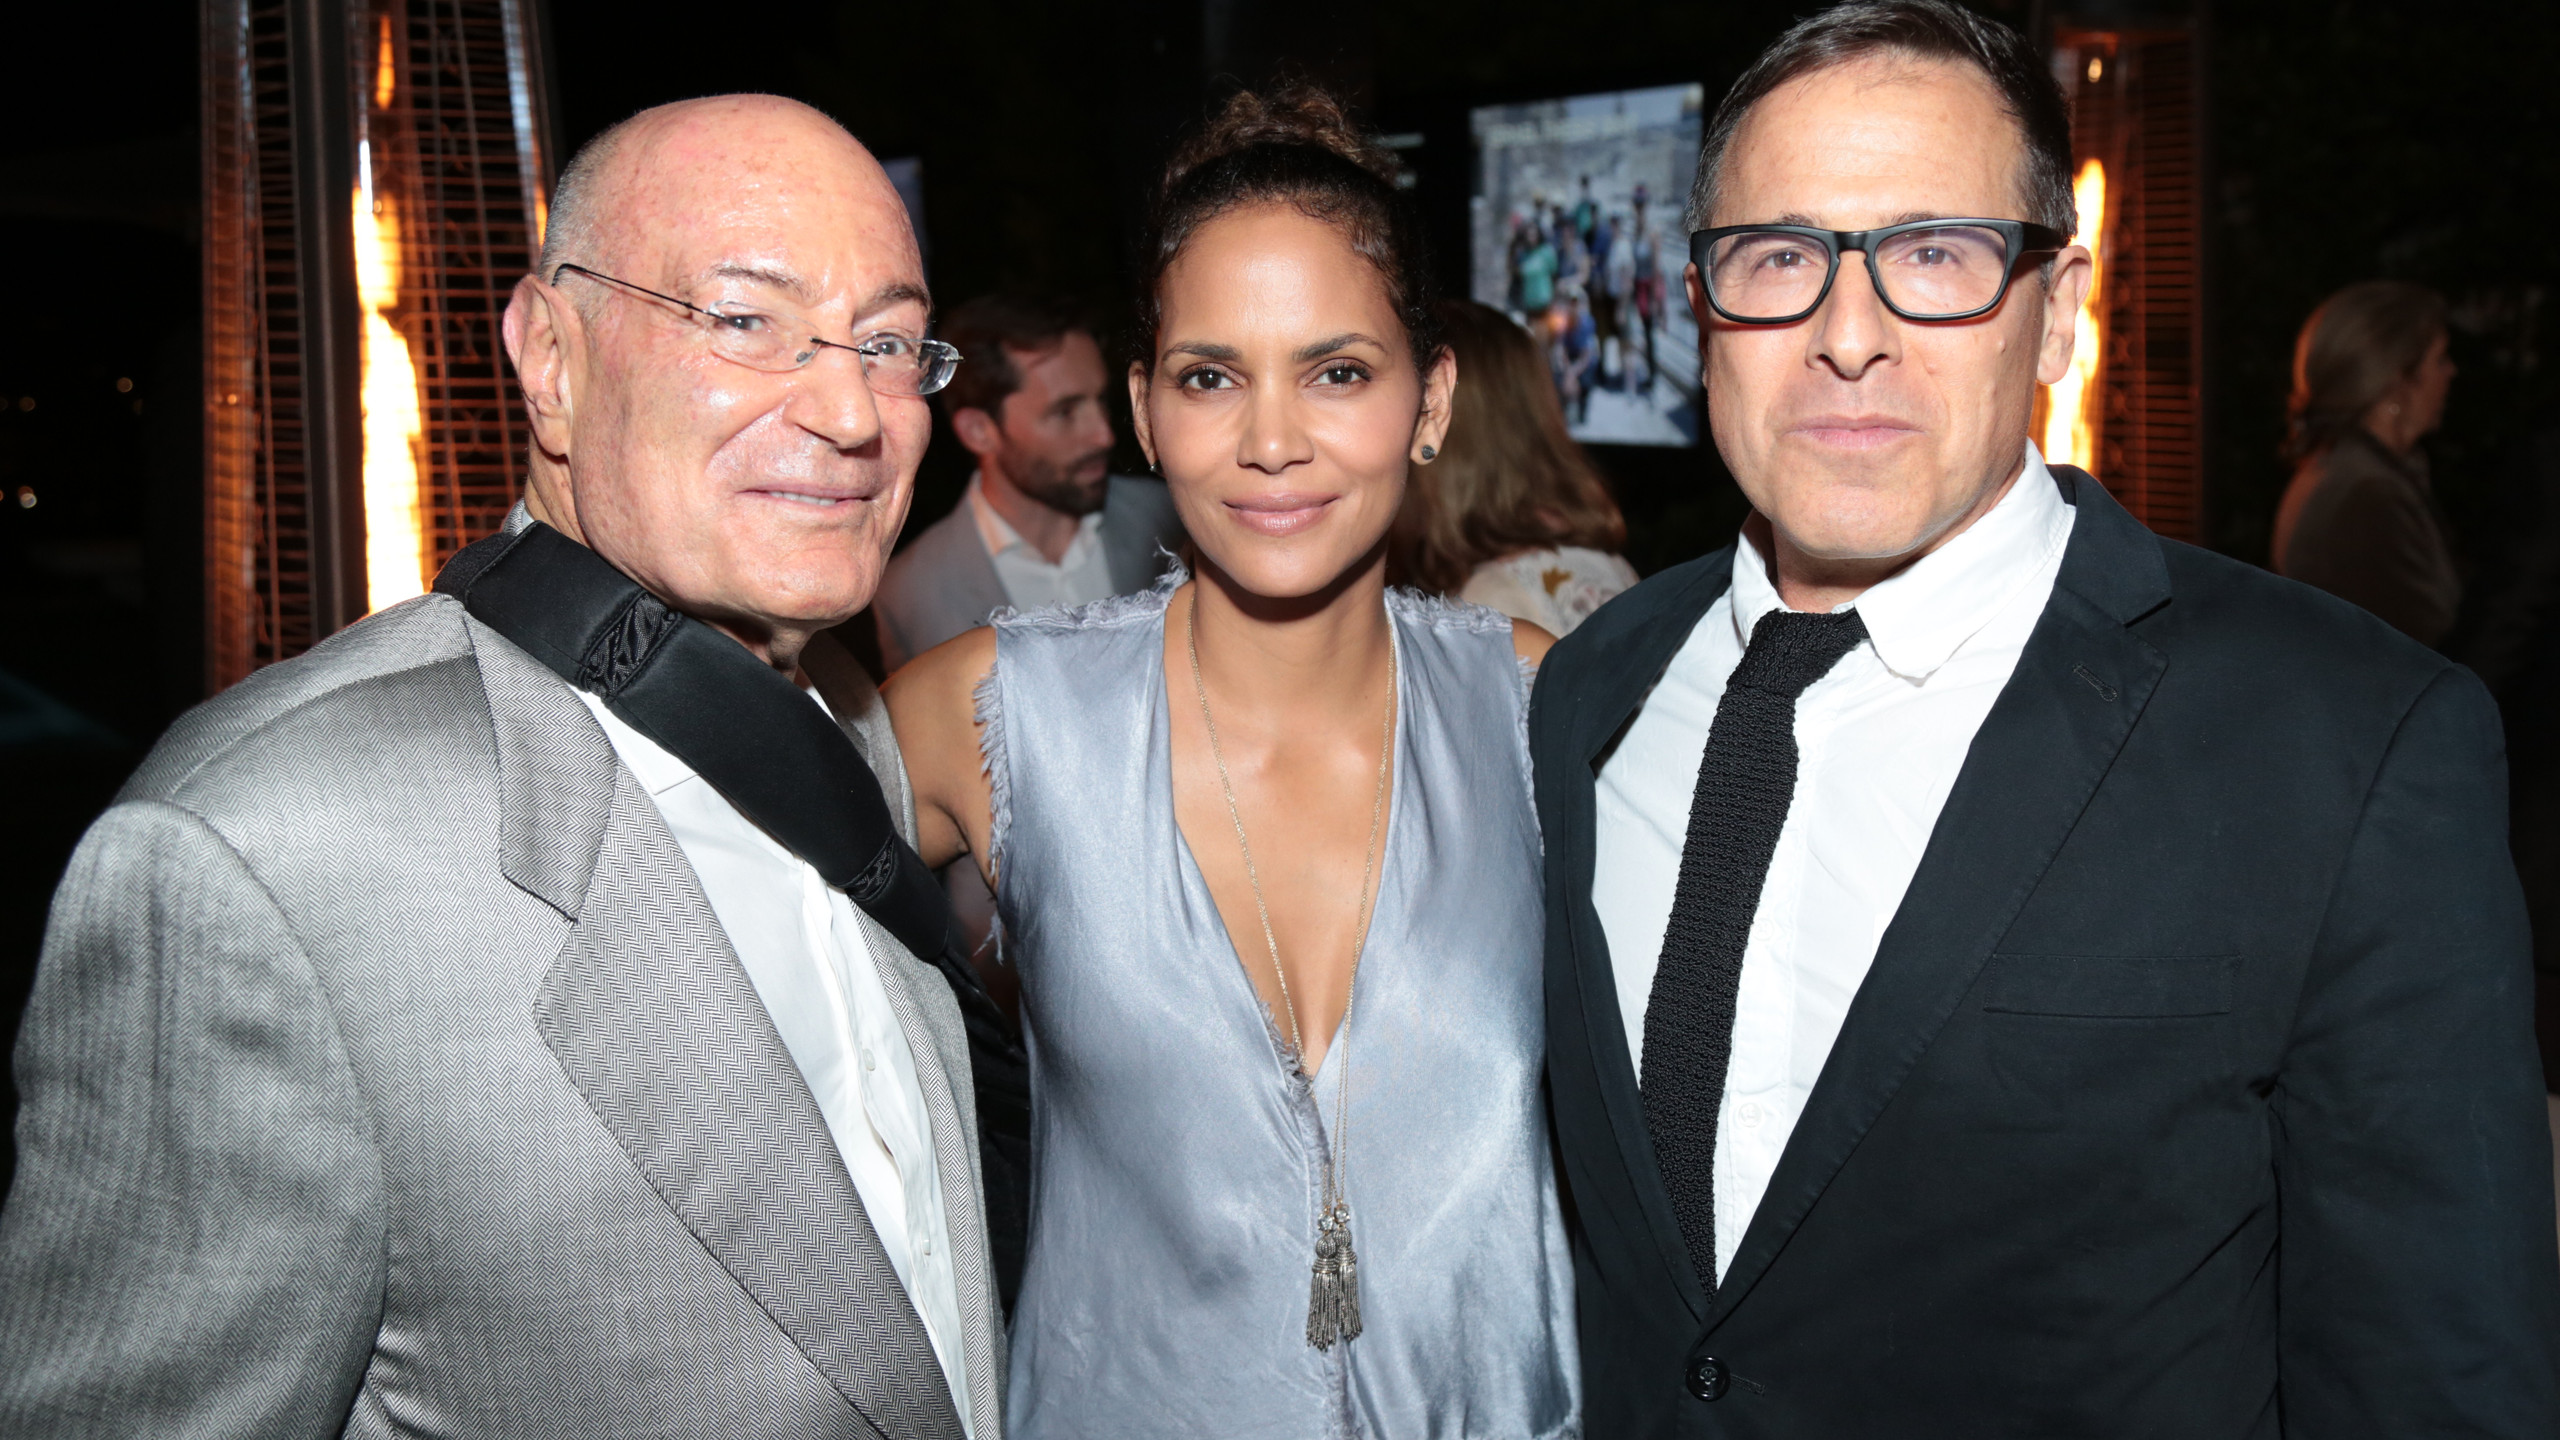 Honorees: Arnon Milchan, Halle Berry, David O. Russell  (Photo: Alex J. Berliner / ABImages )